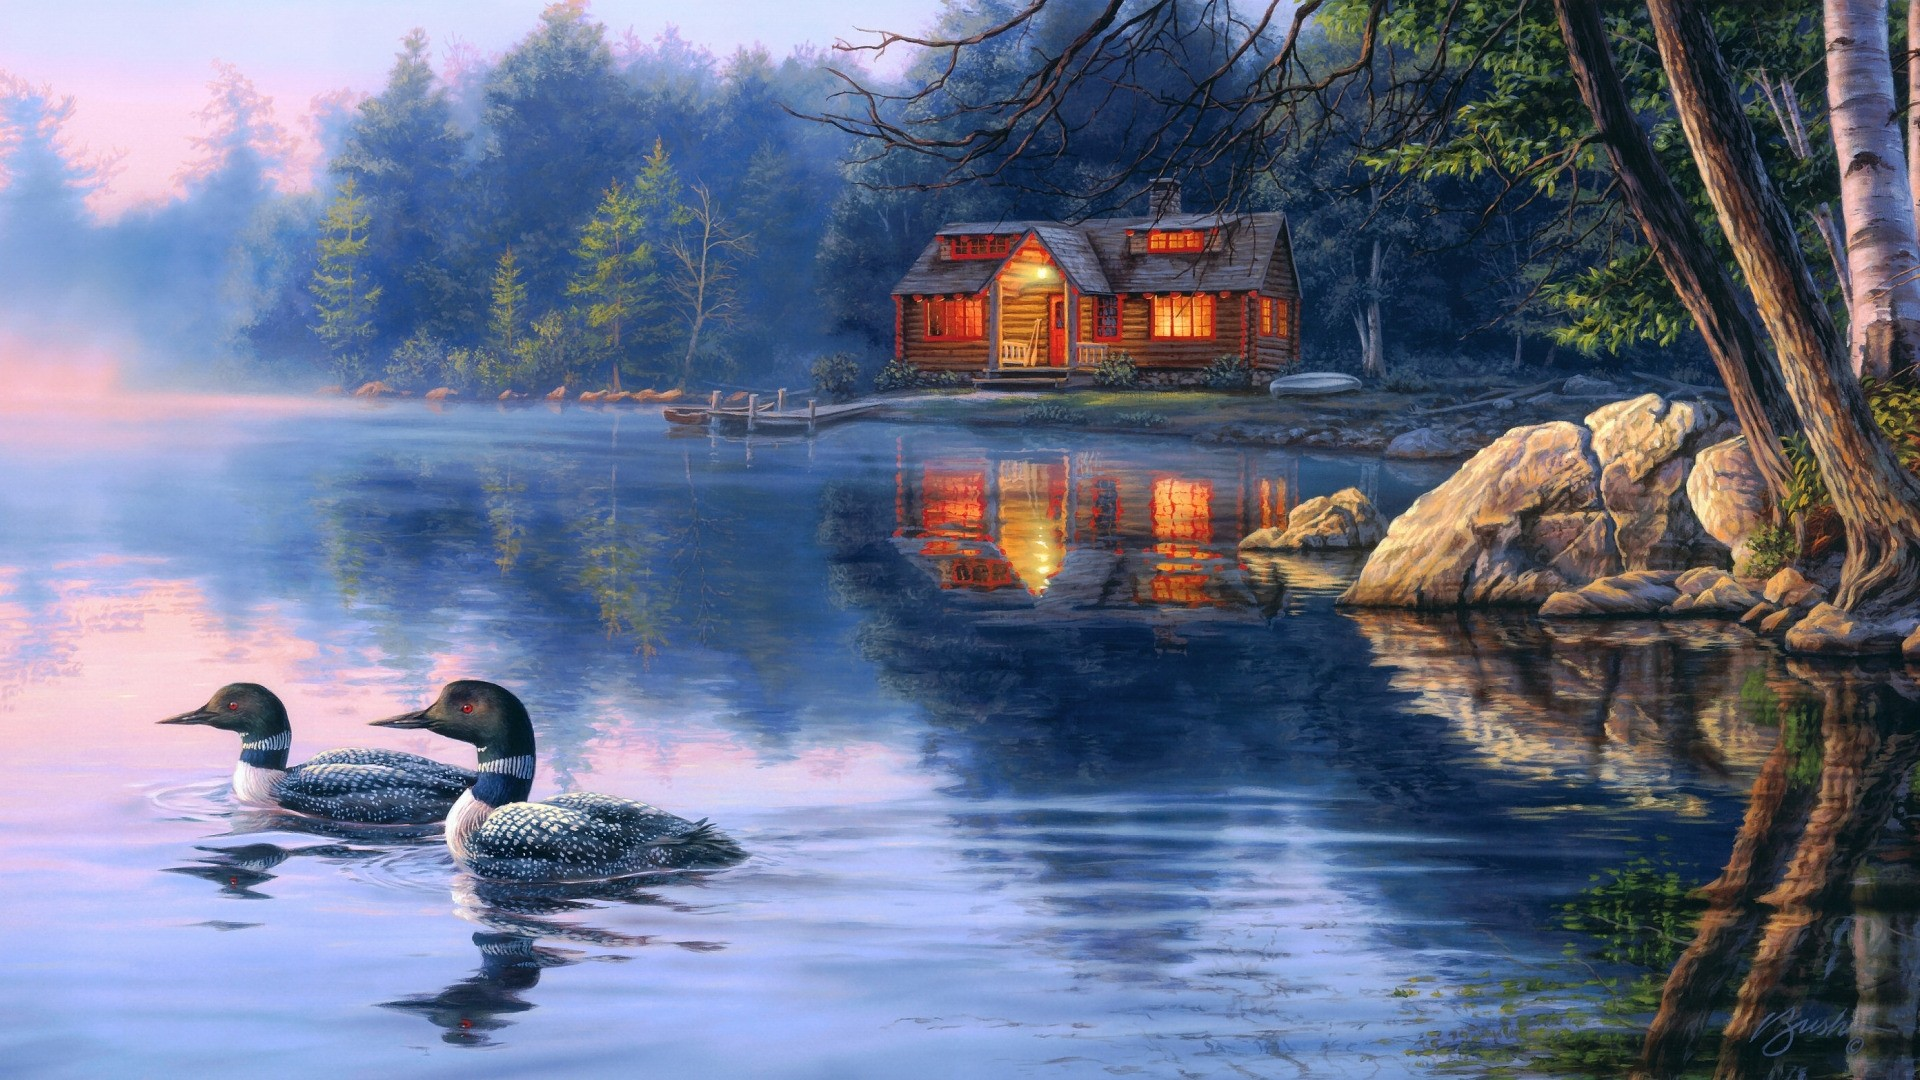 House By The River Art High Quality